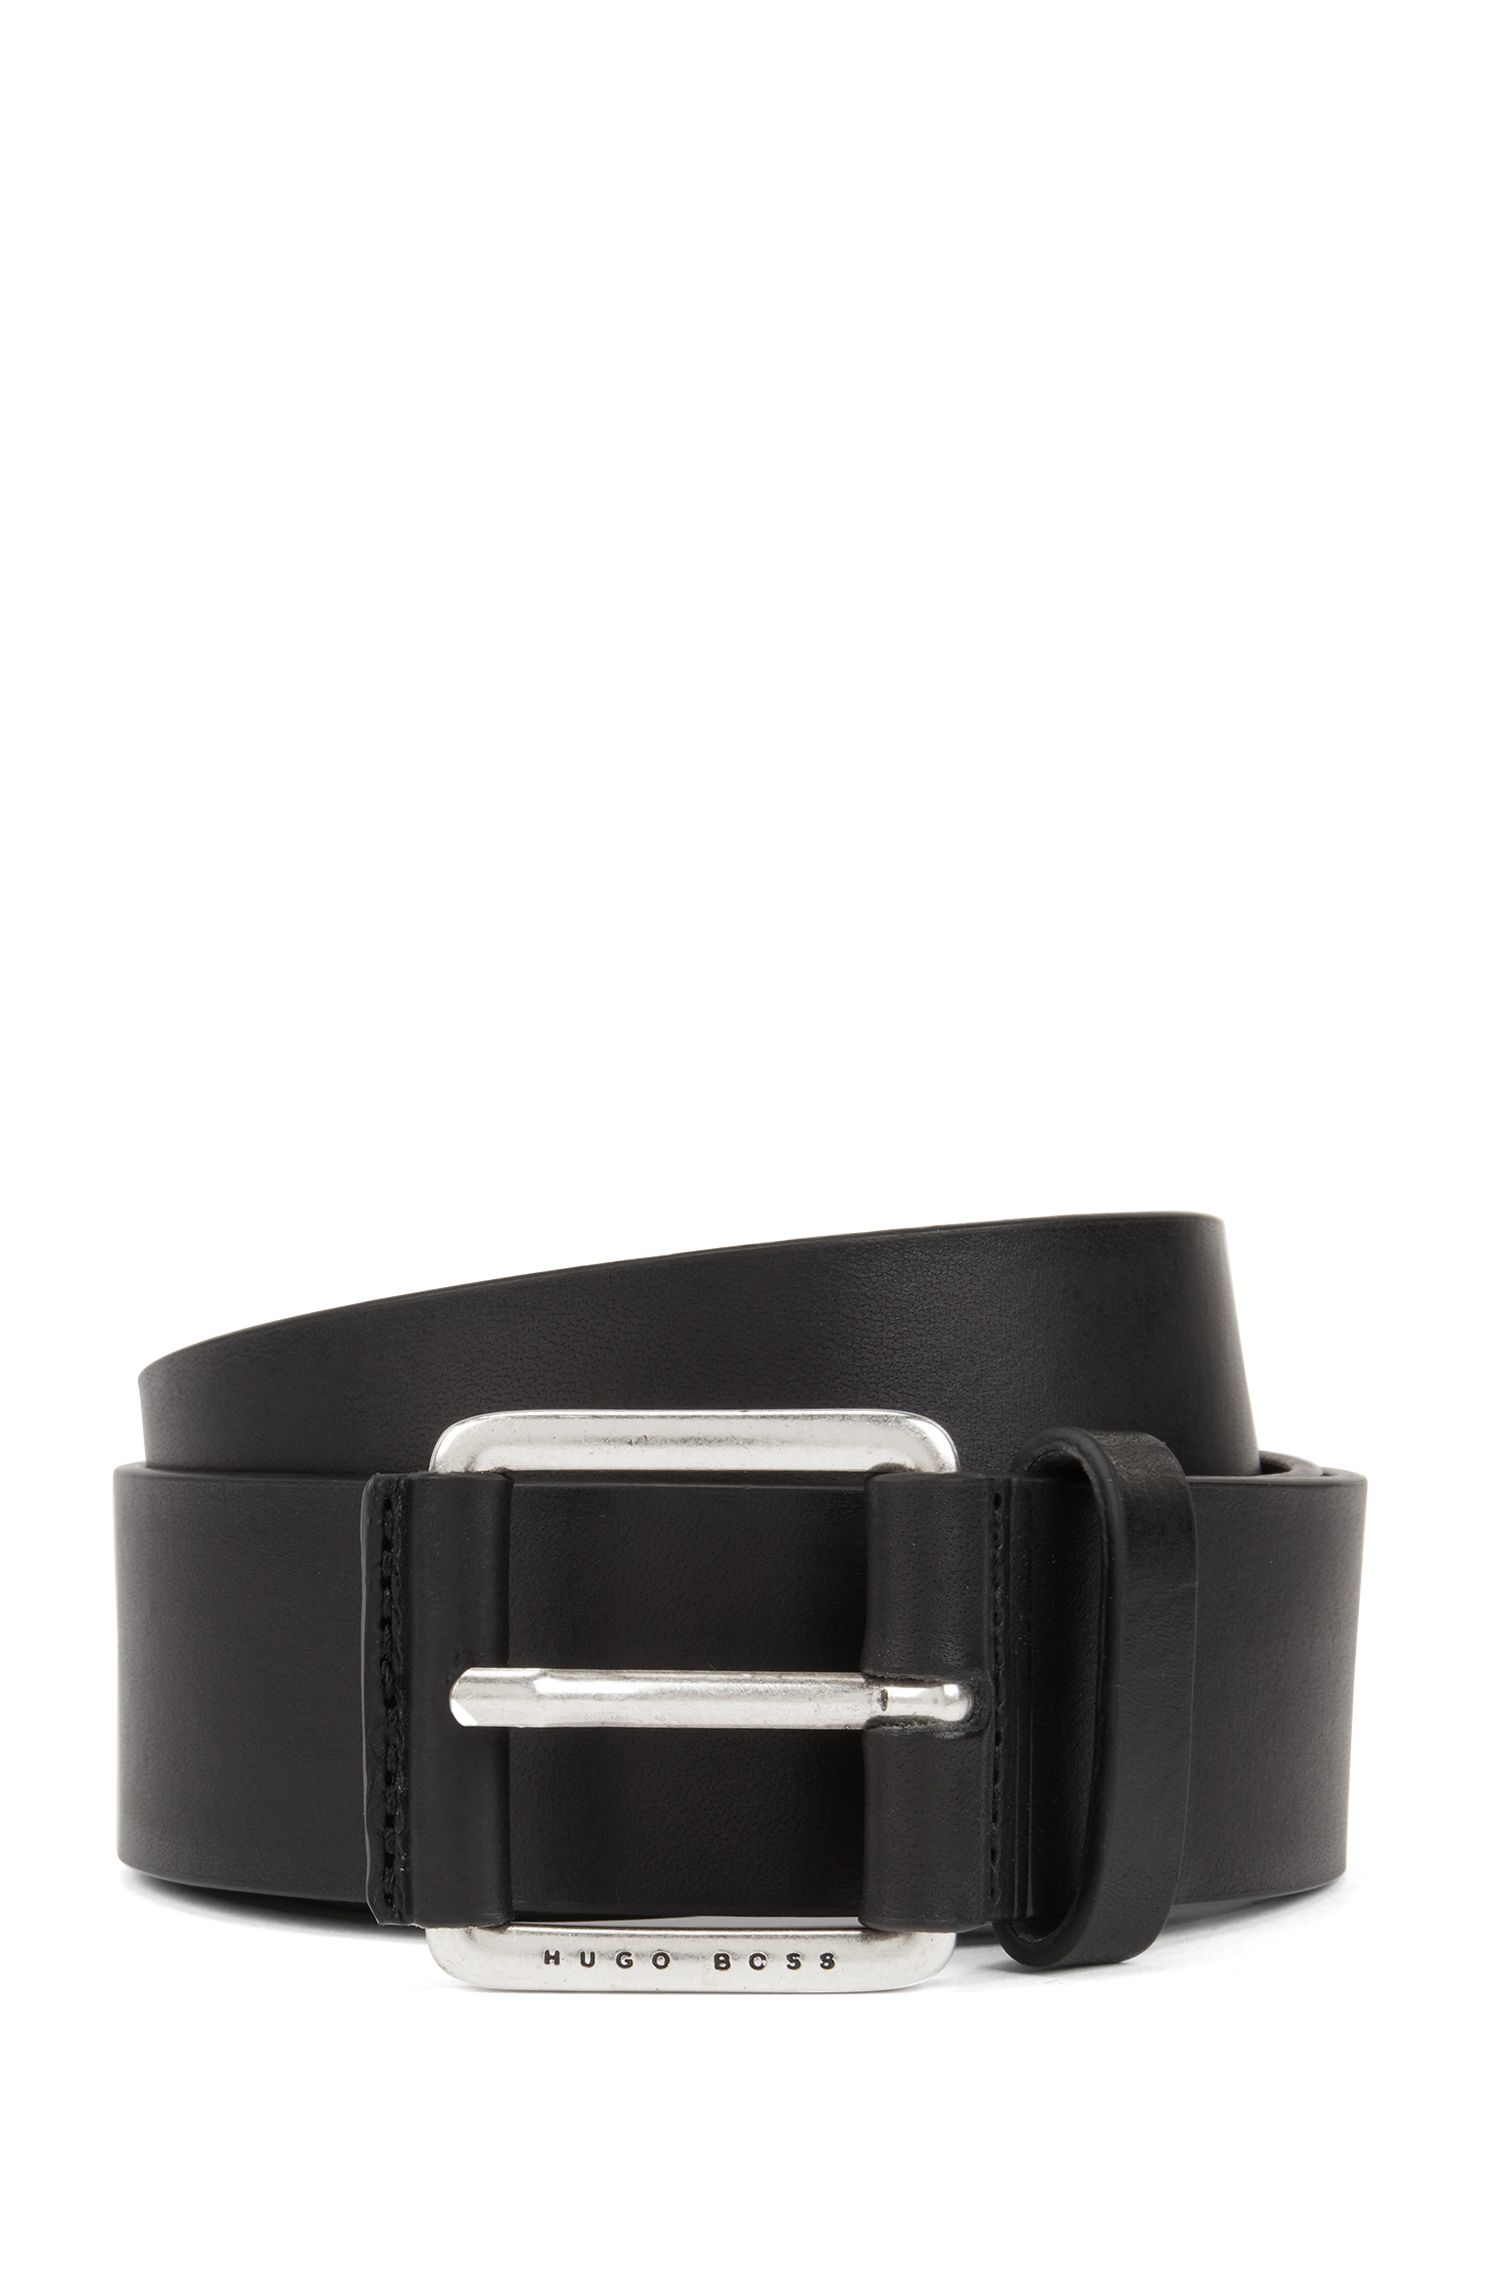 Smooth leather belt with leather-covered buckle